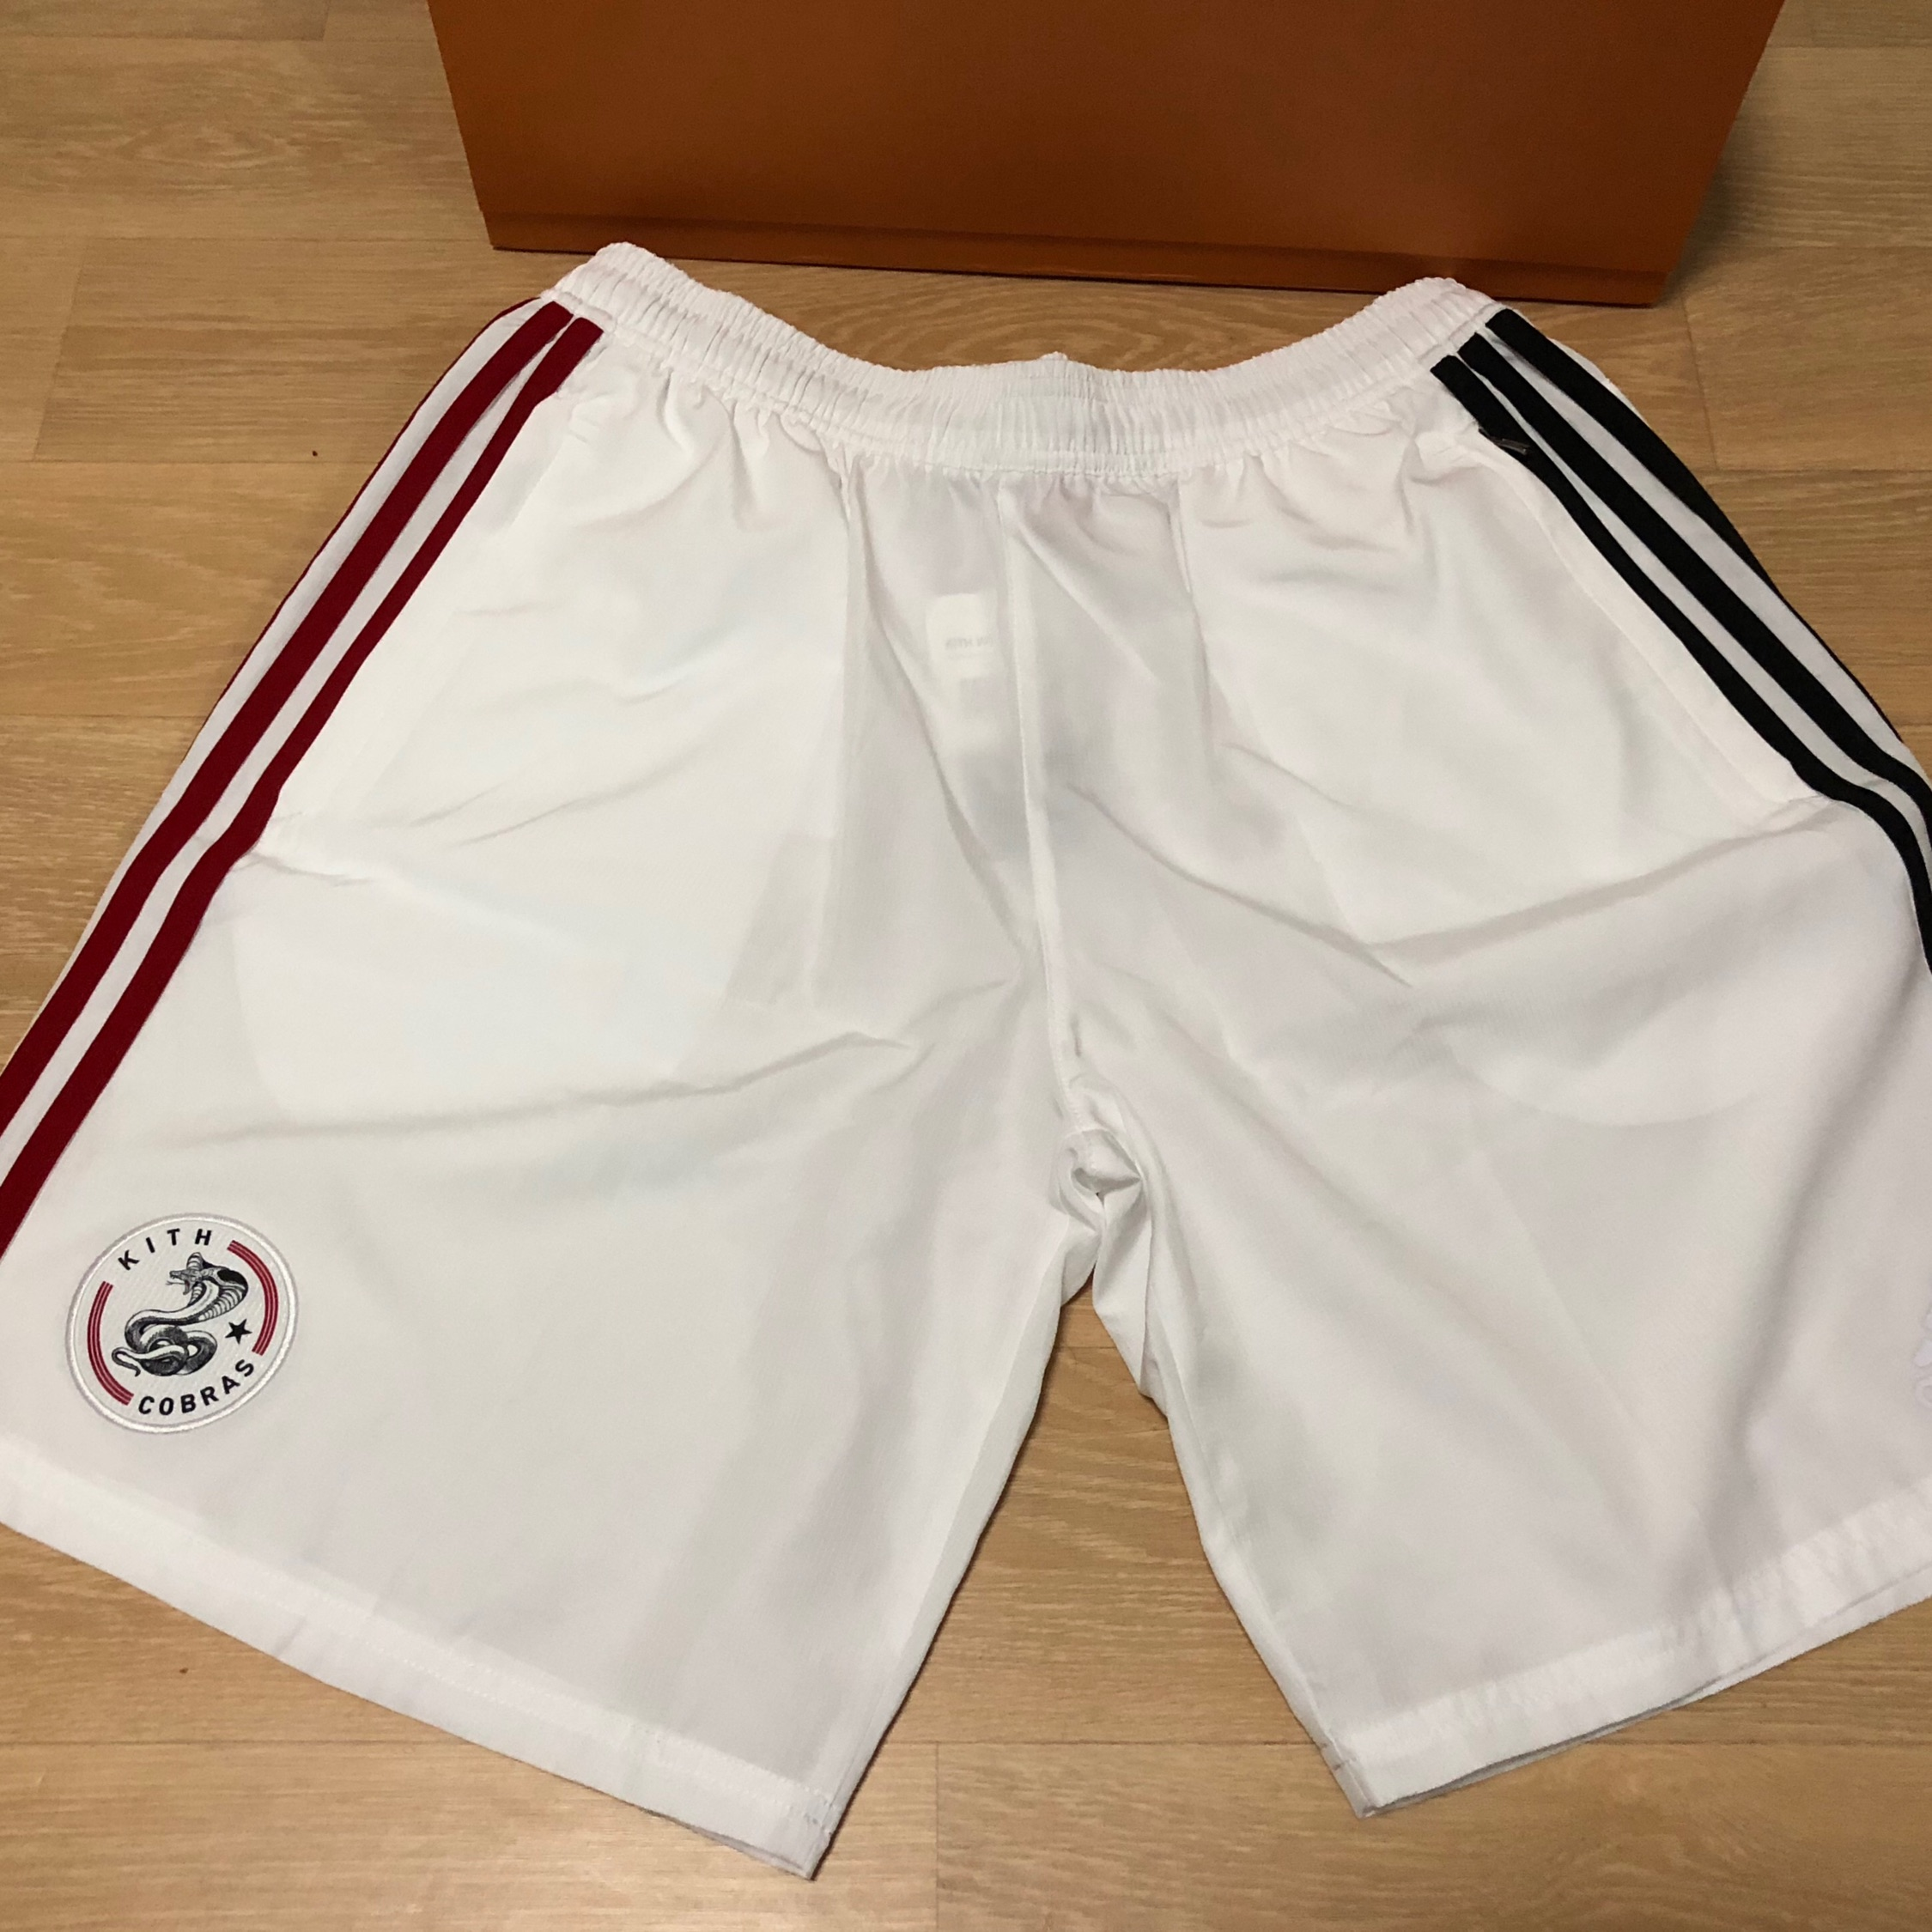 new arrival 73212 19fdd Kith X Adidas Soccer Drop #1: White Cobras Shorts